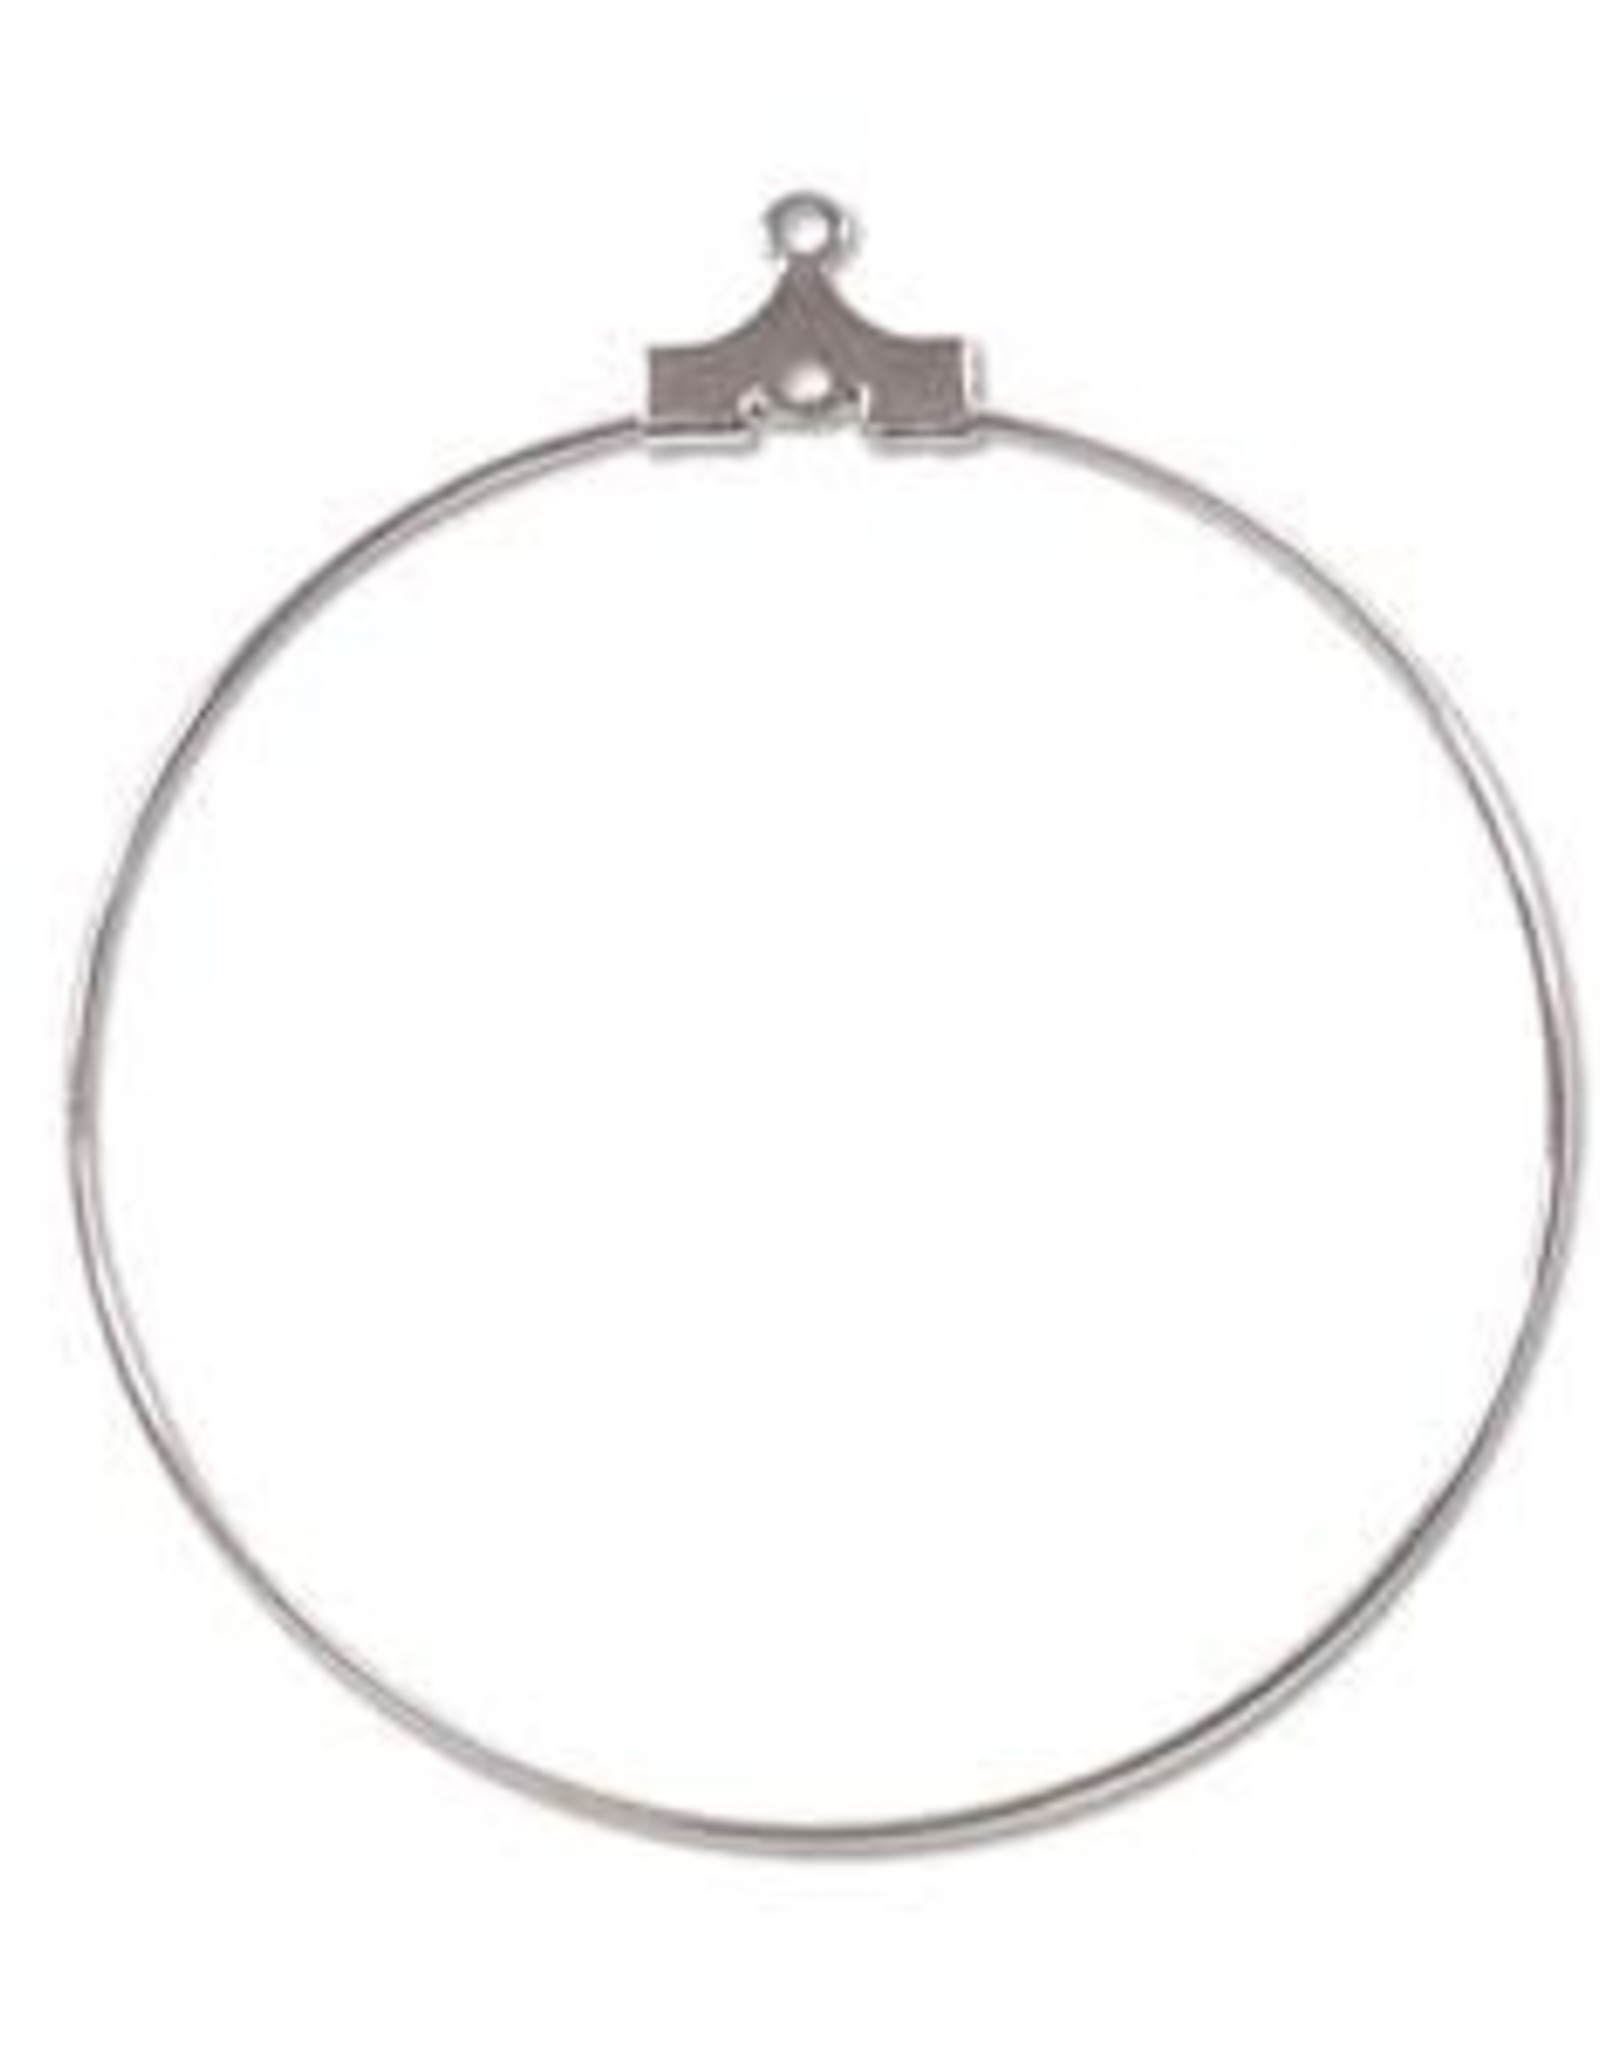 40mm Bead Hoop Silver Plate Qty 12